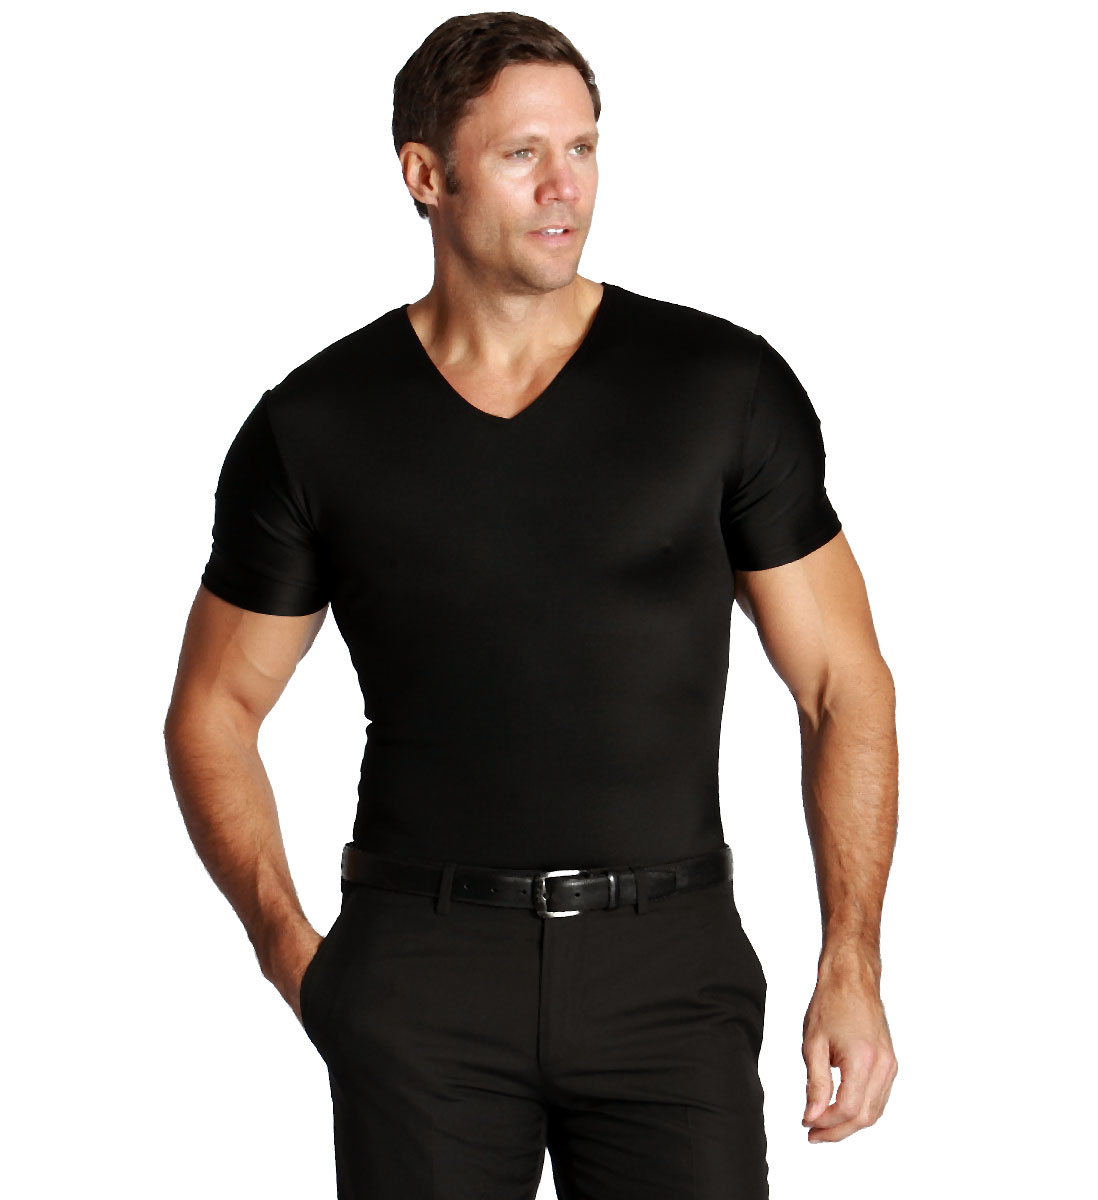 GIFT PACK Insta Slim V-Neck Men's Compression Shirt 1 White/1 Black